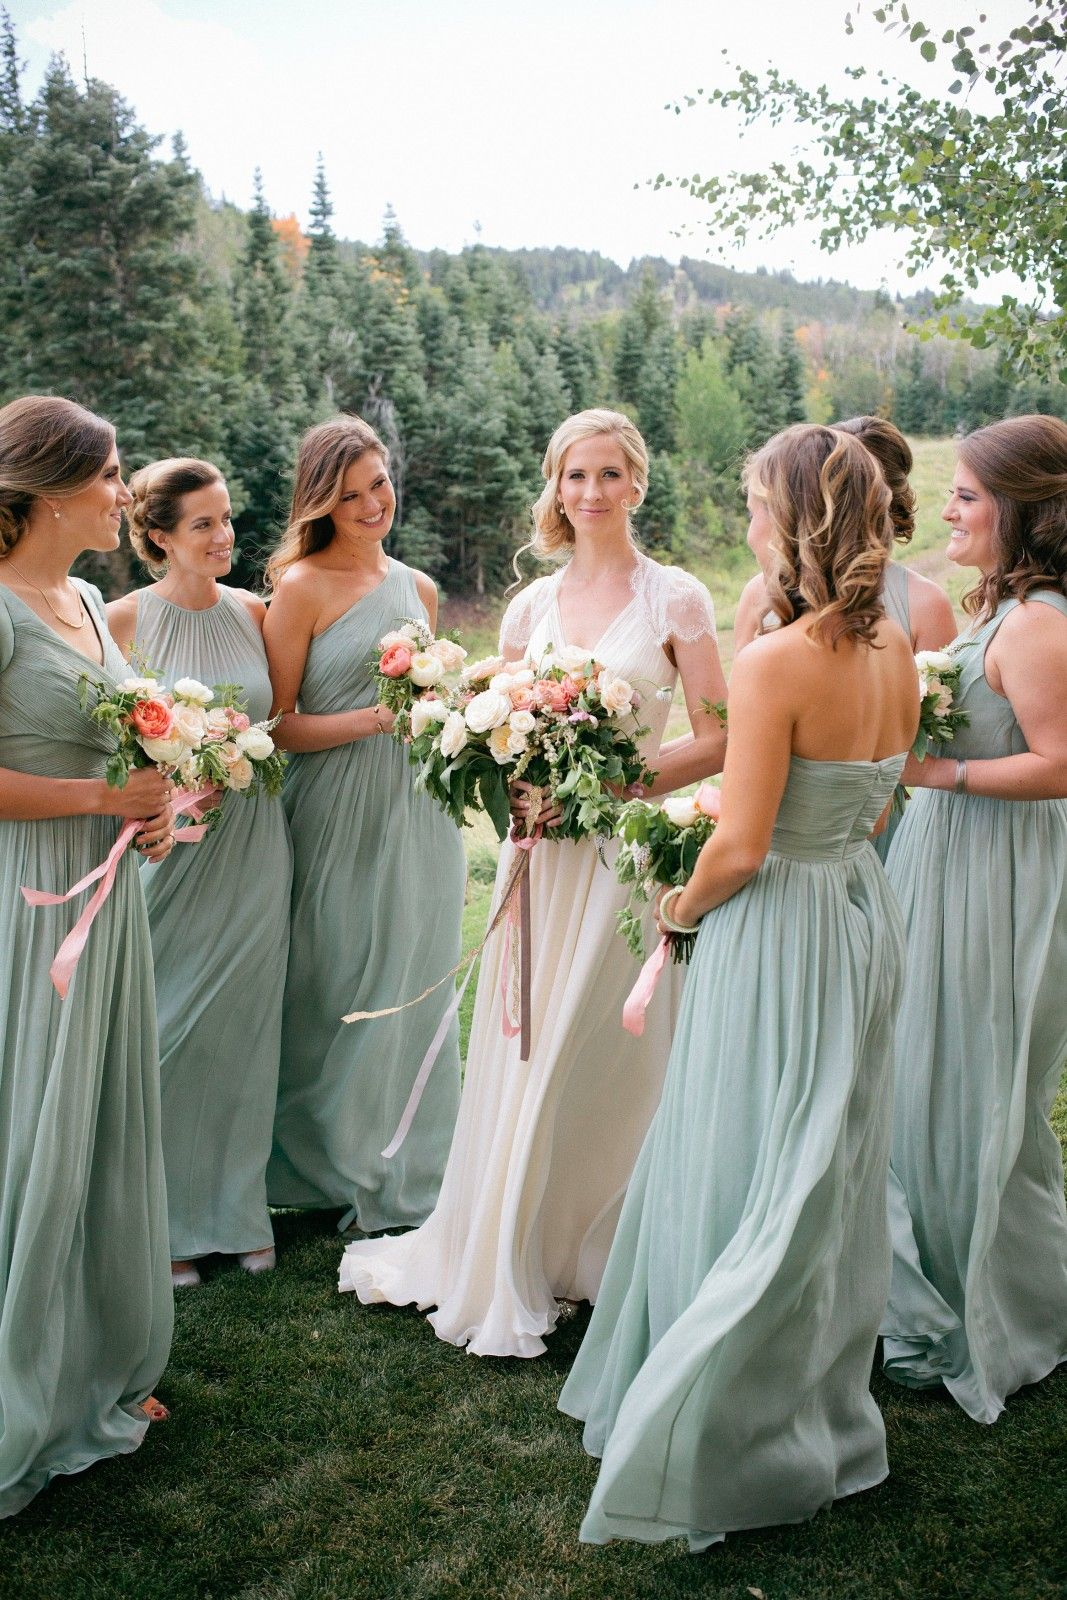 Sage green bridesmaid dresses flow dresses pins i love mix and match sage green bridesmaid dresses for english garden feel ombrellifo Choice Image